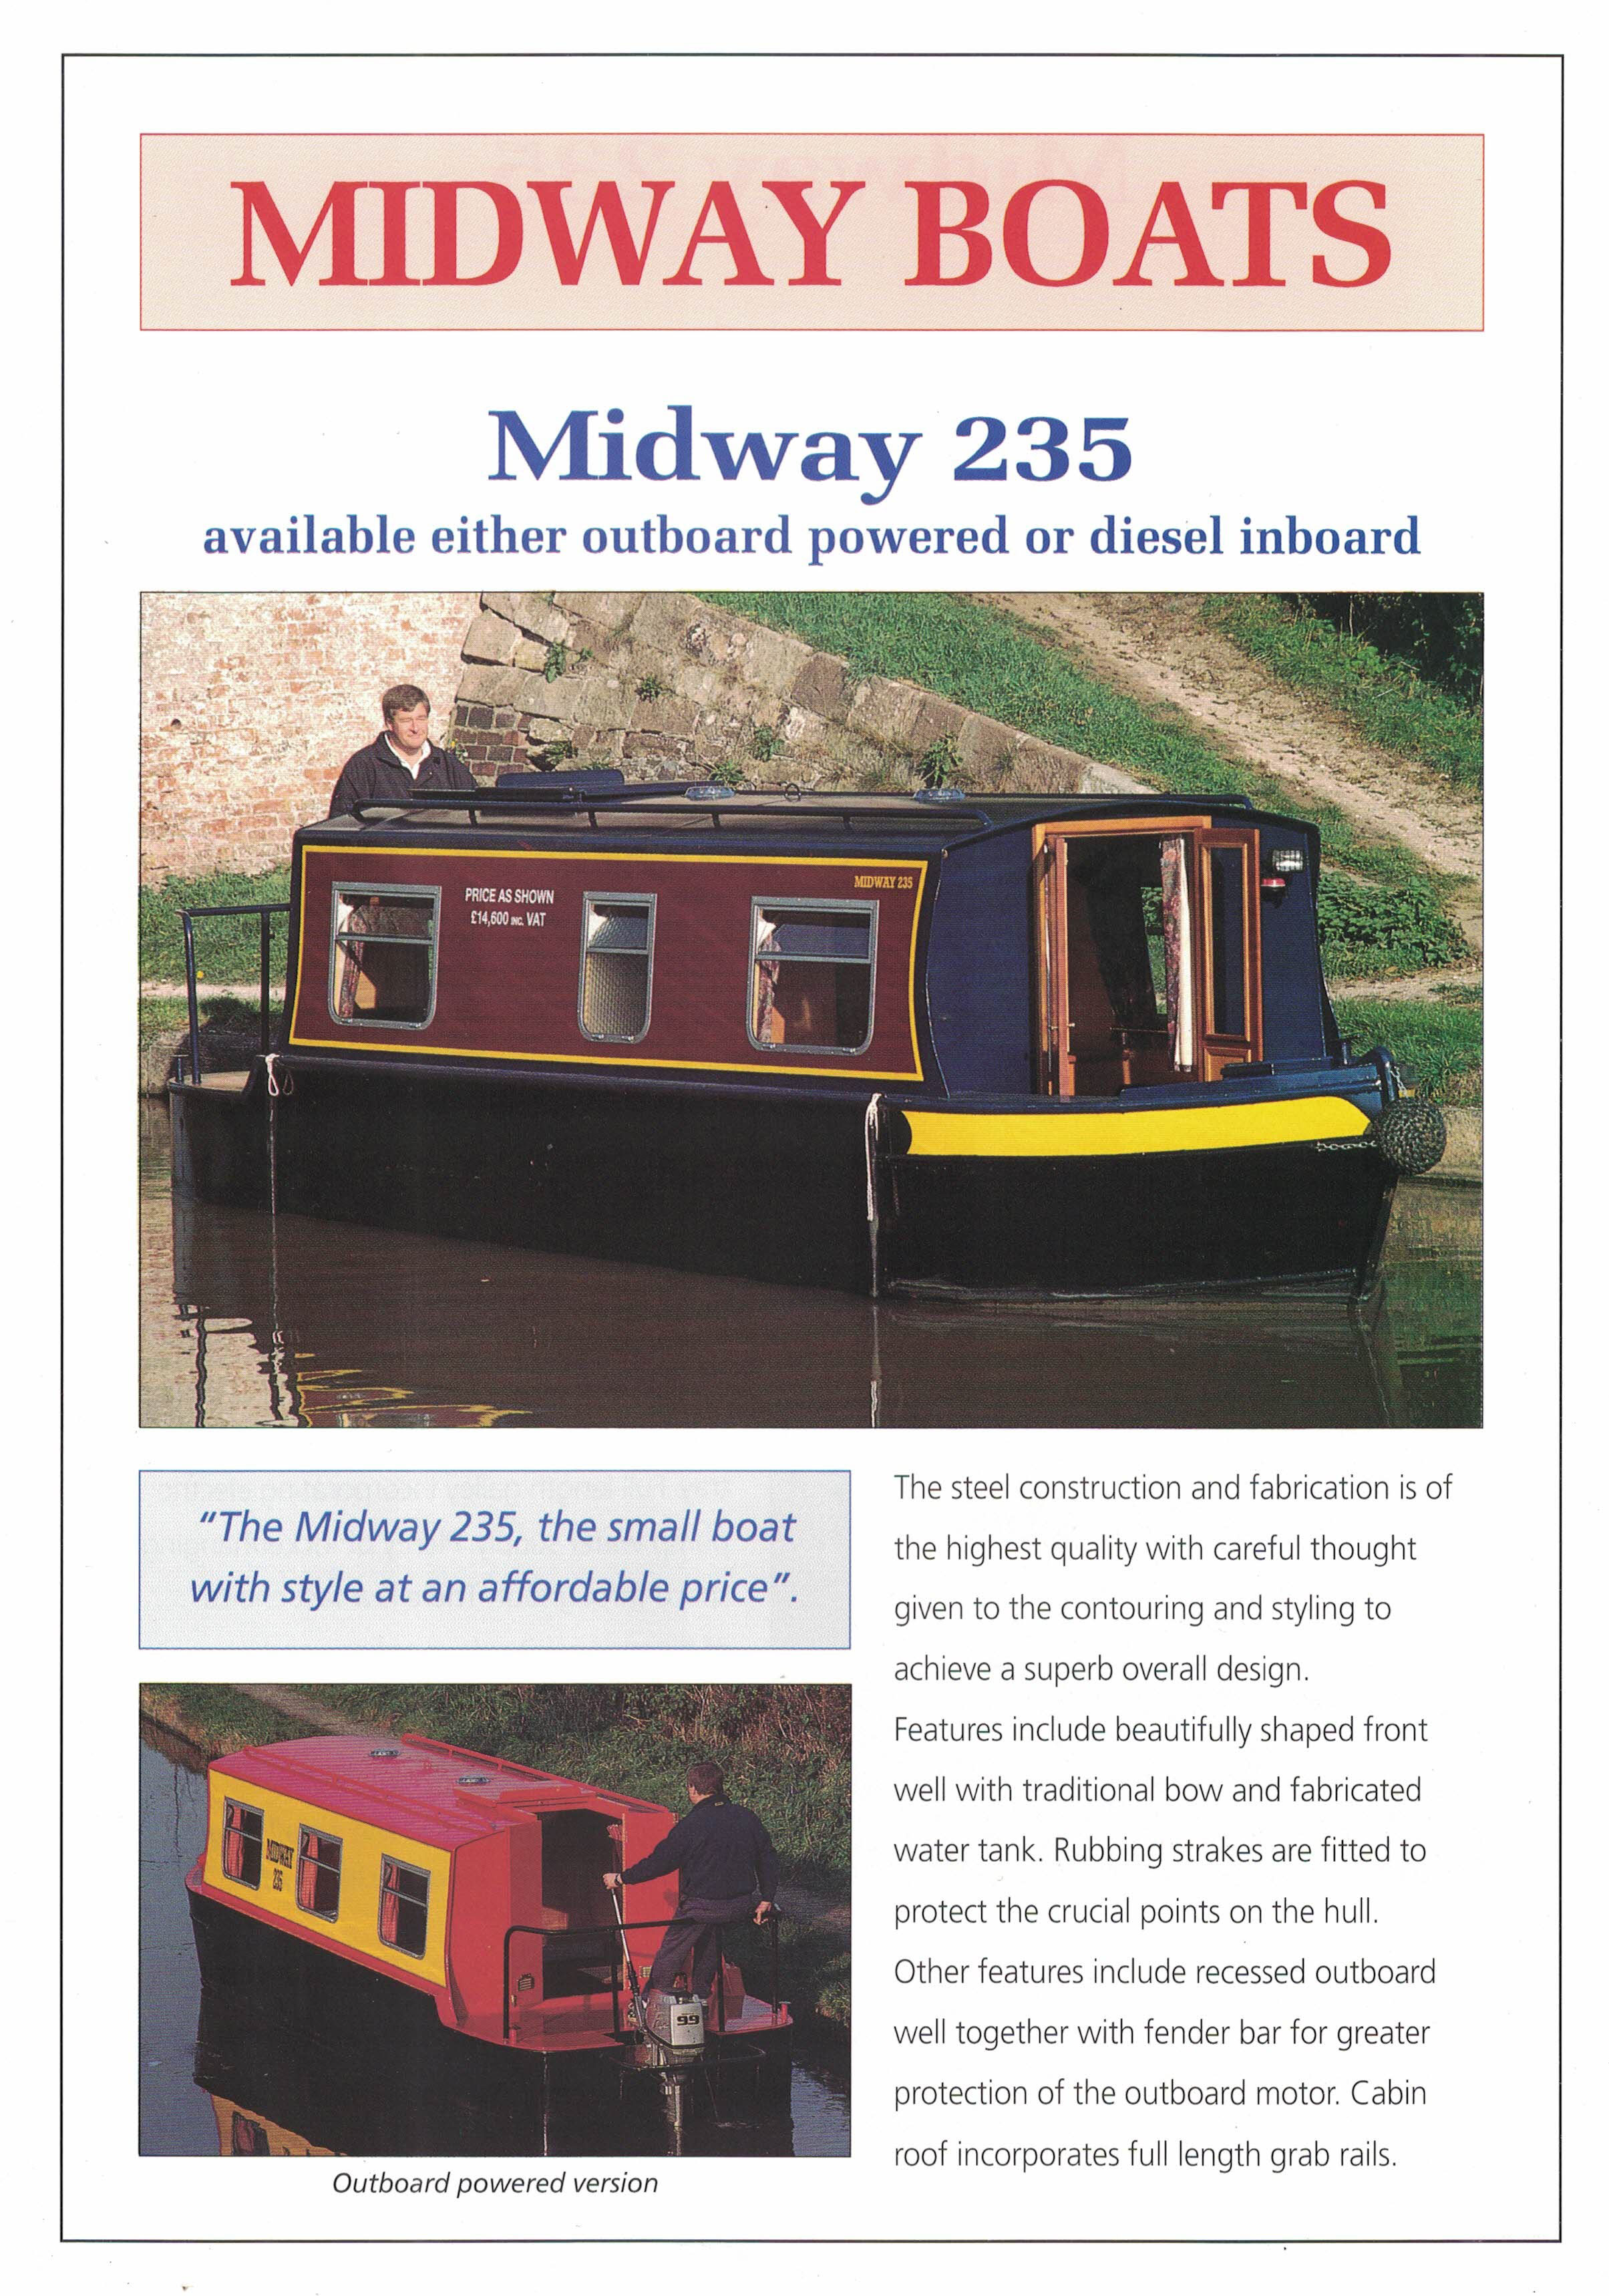 Midway 235 early edition Sales Brochure